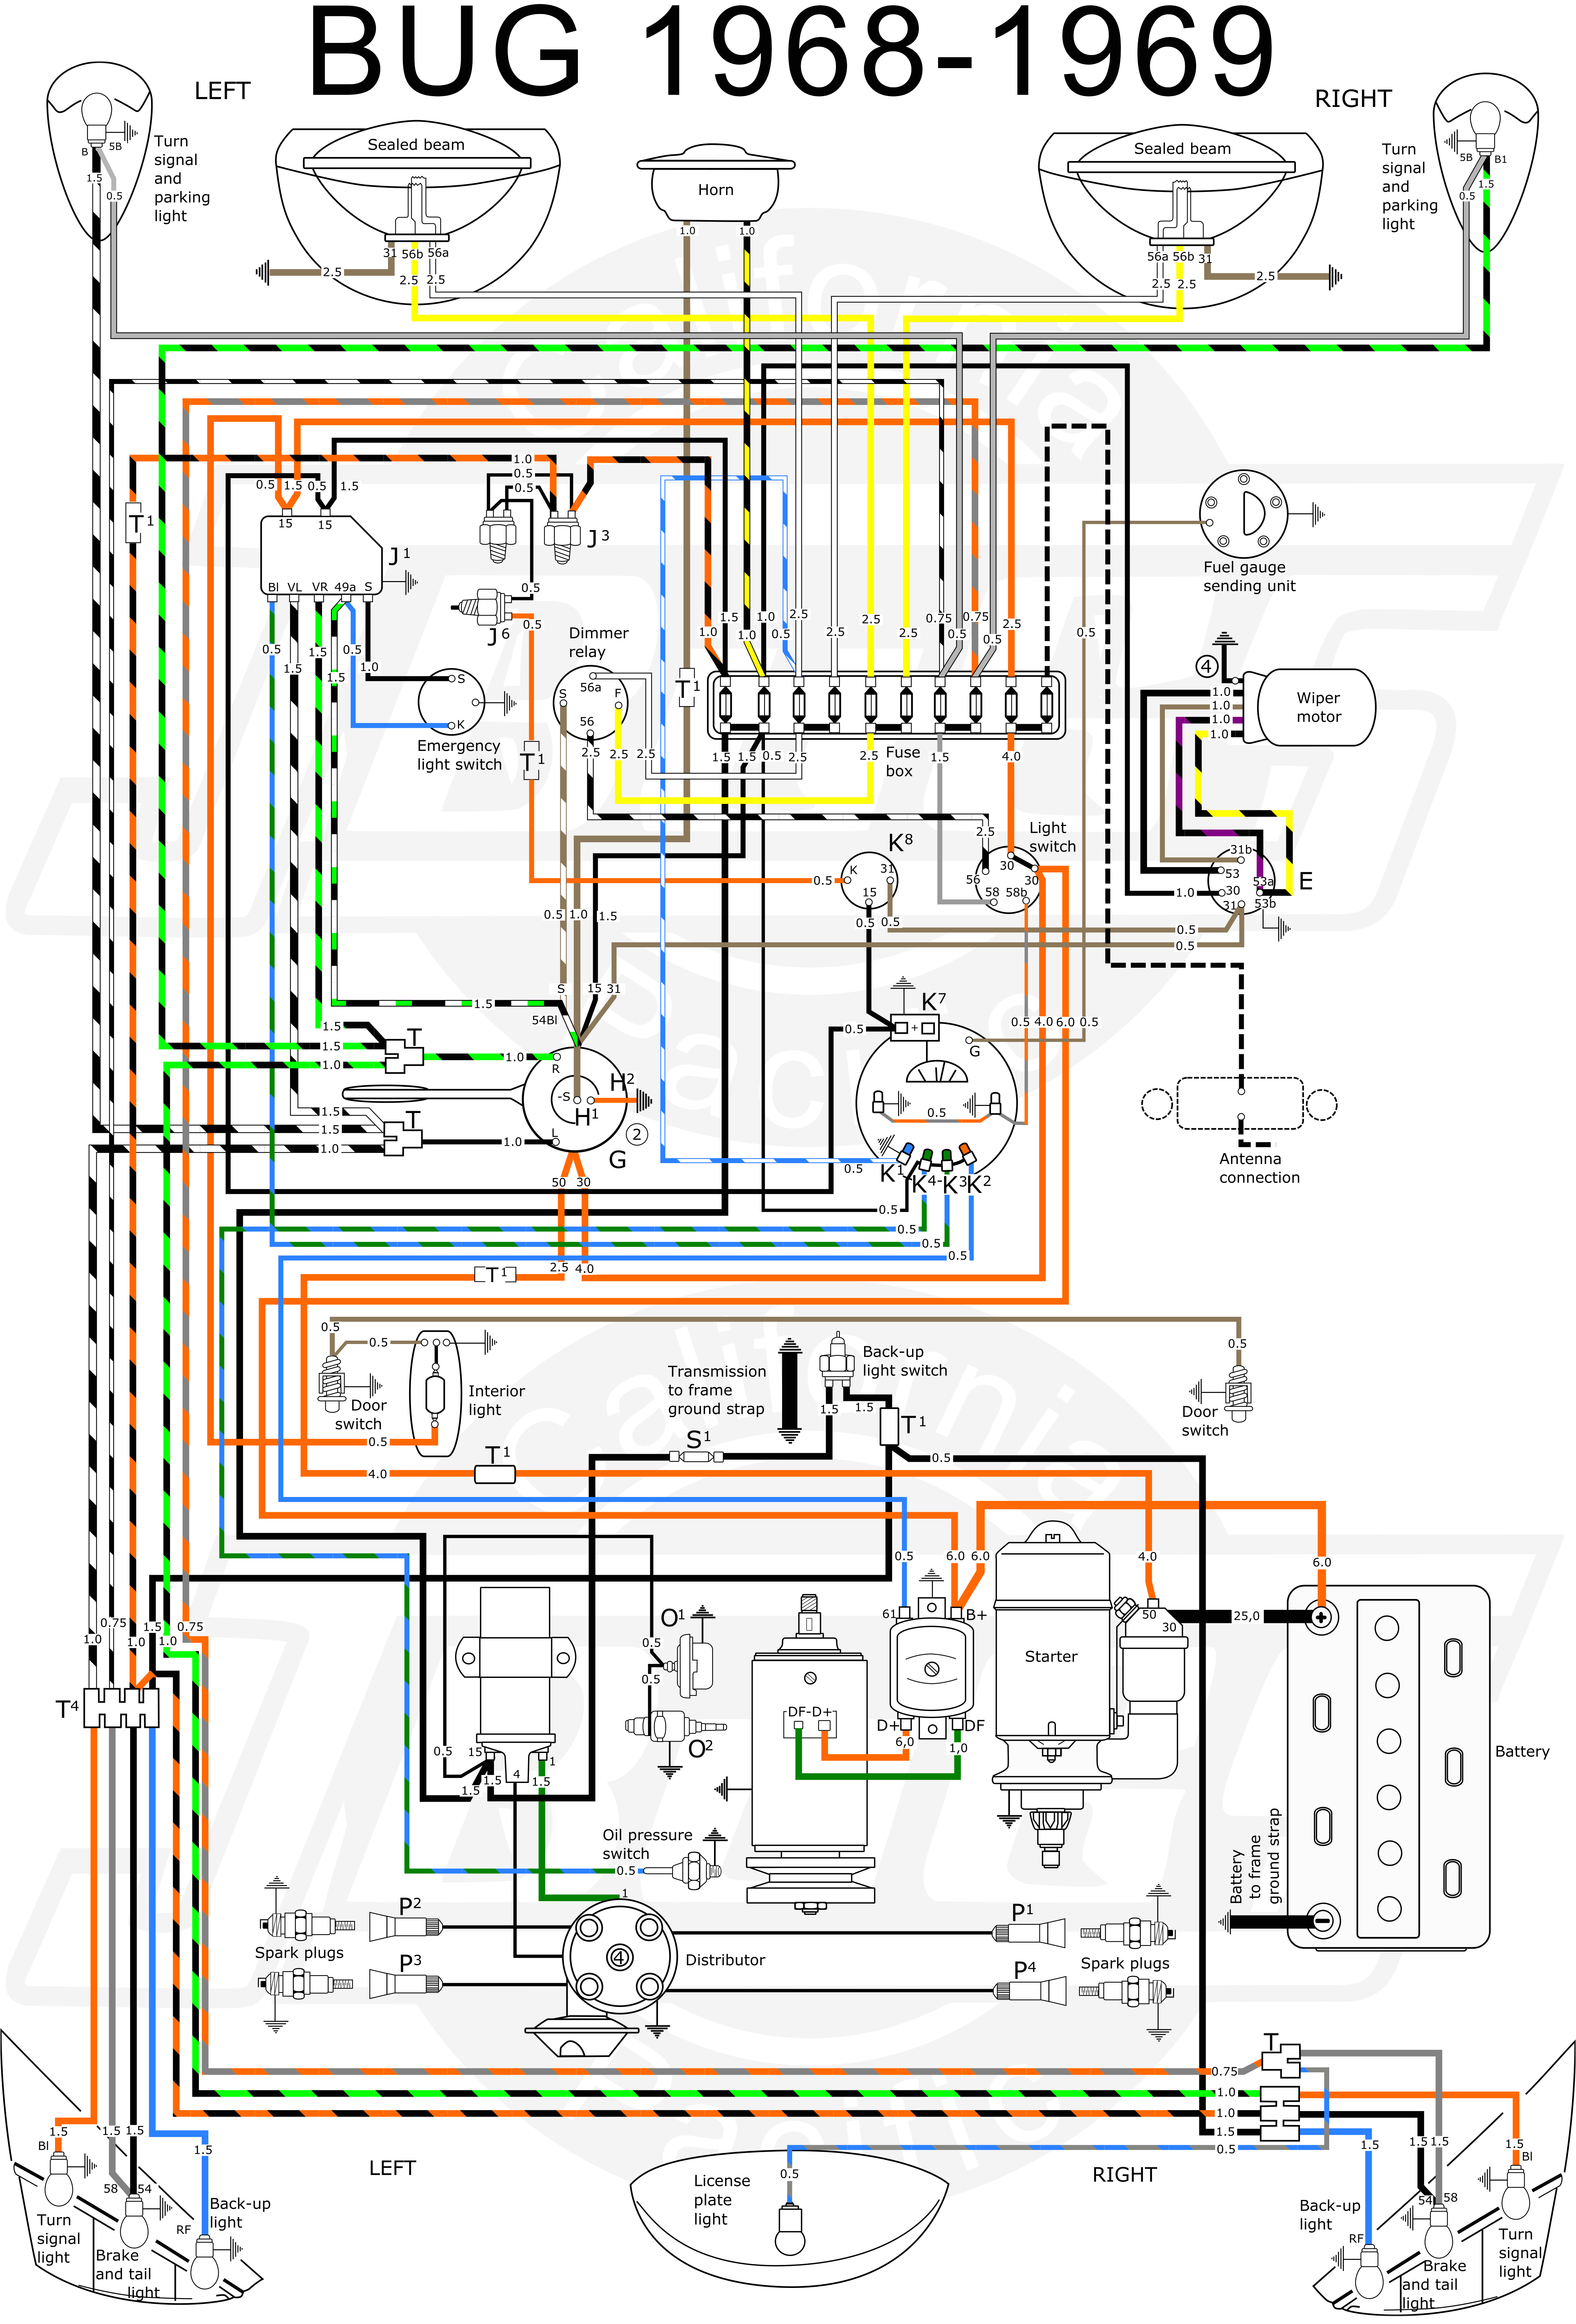 diagram of fuse box wiring for 1968 vw wiring diagram expert